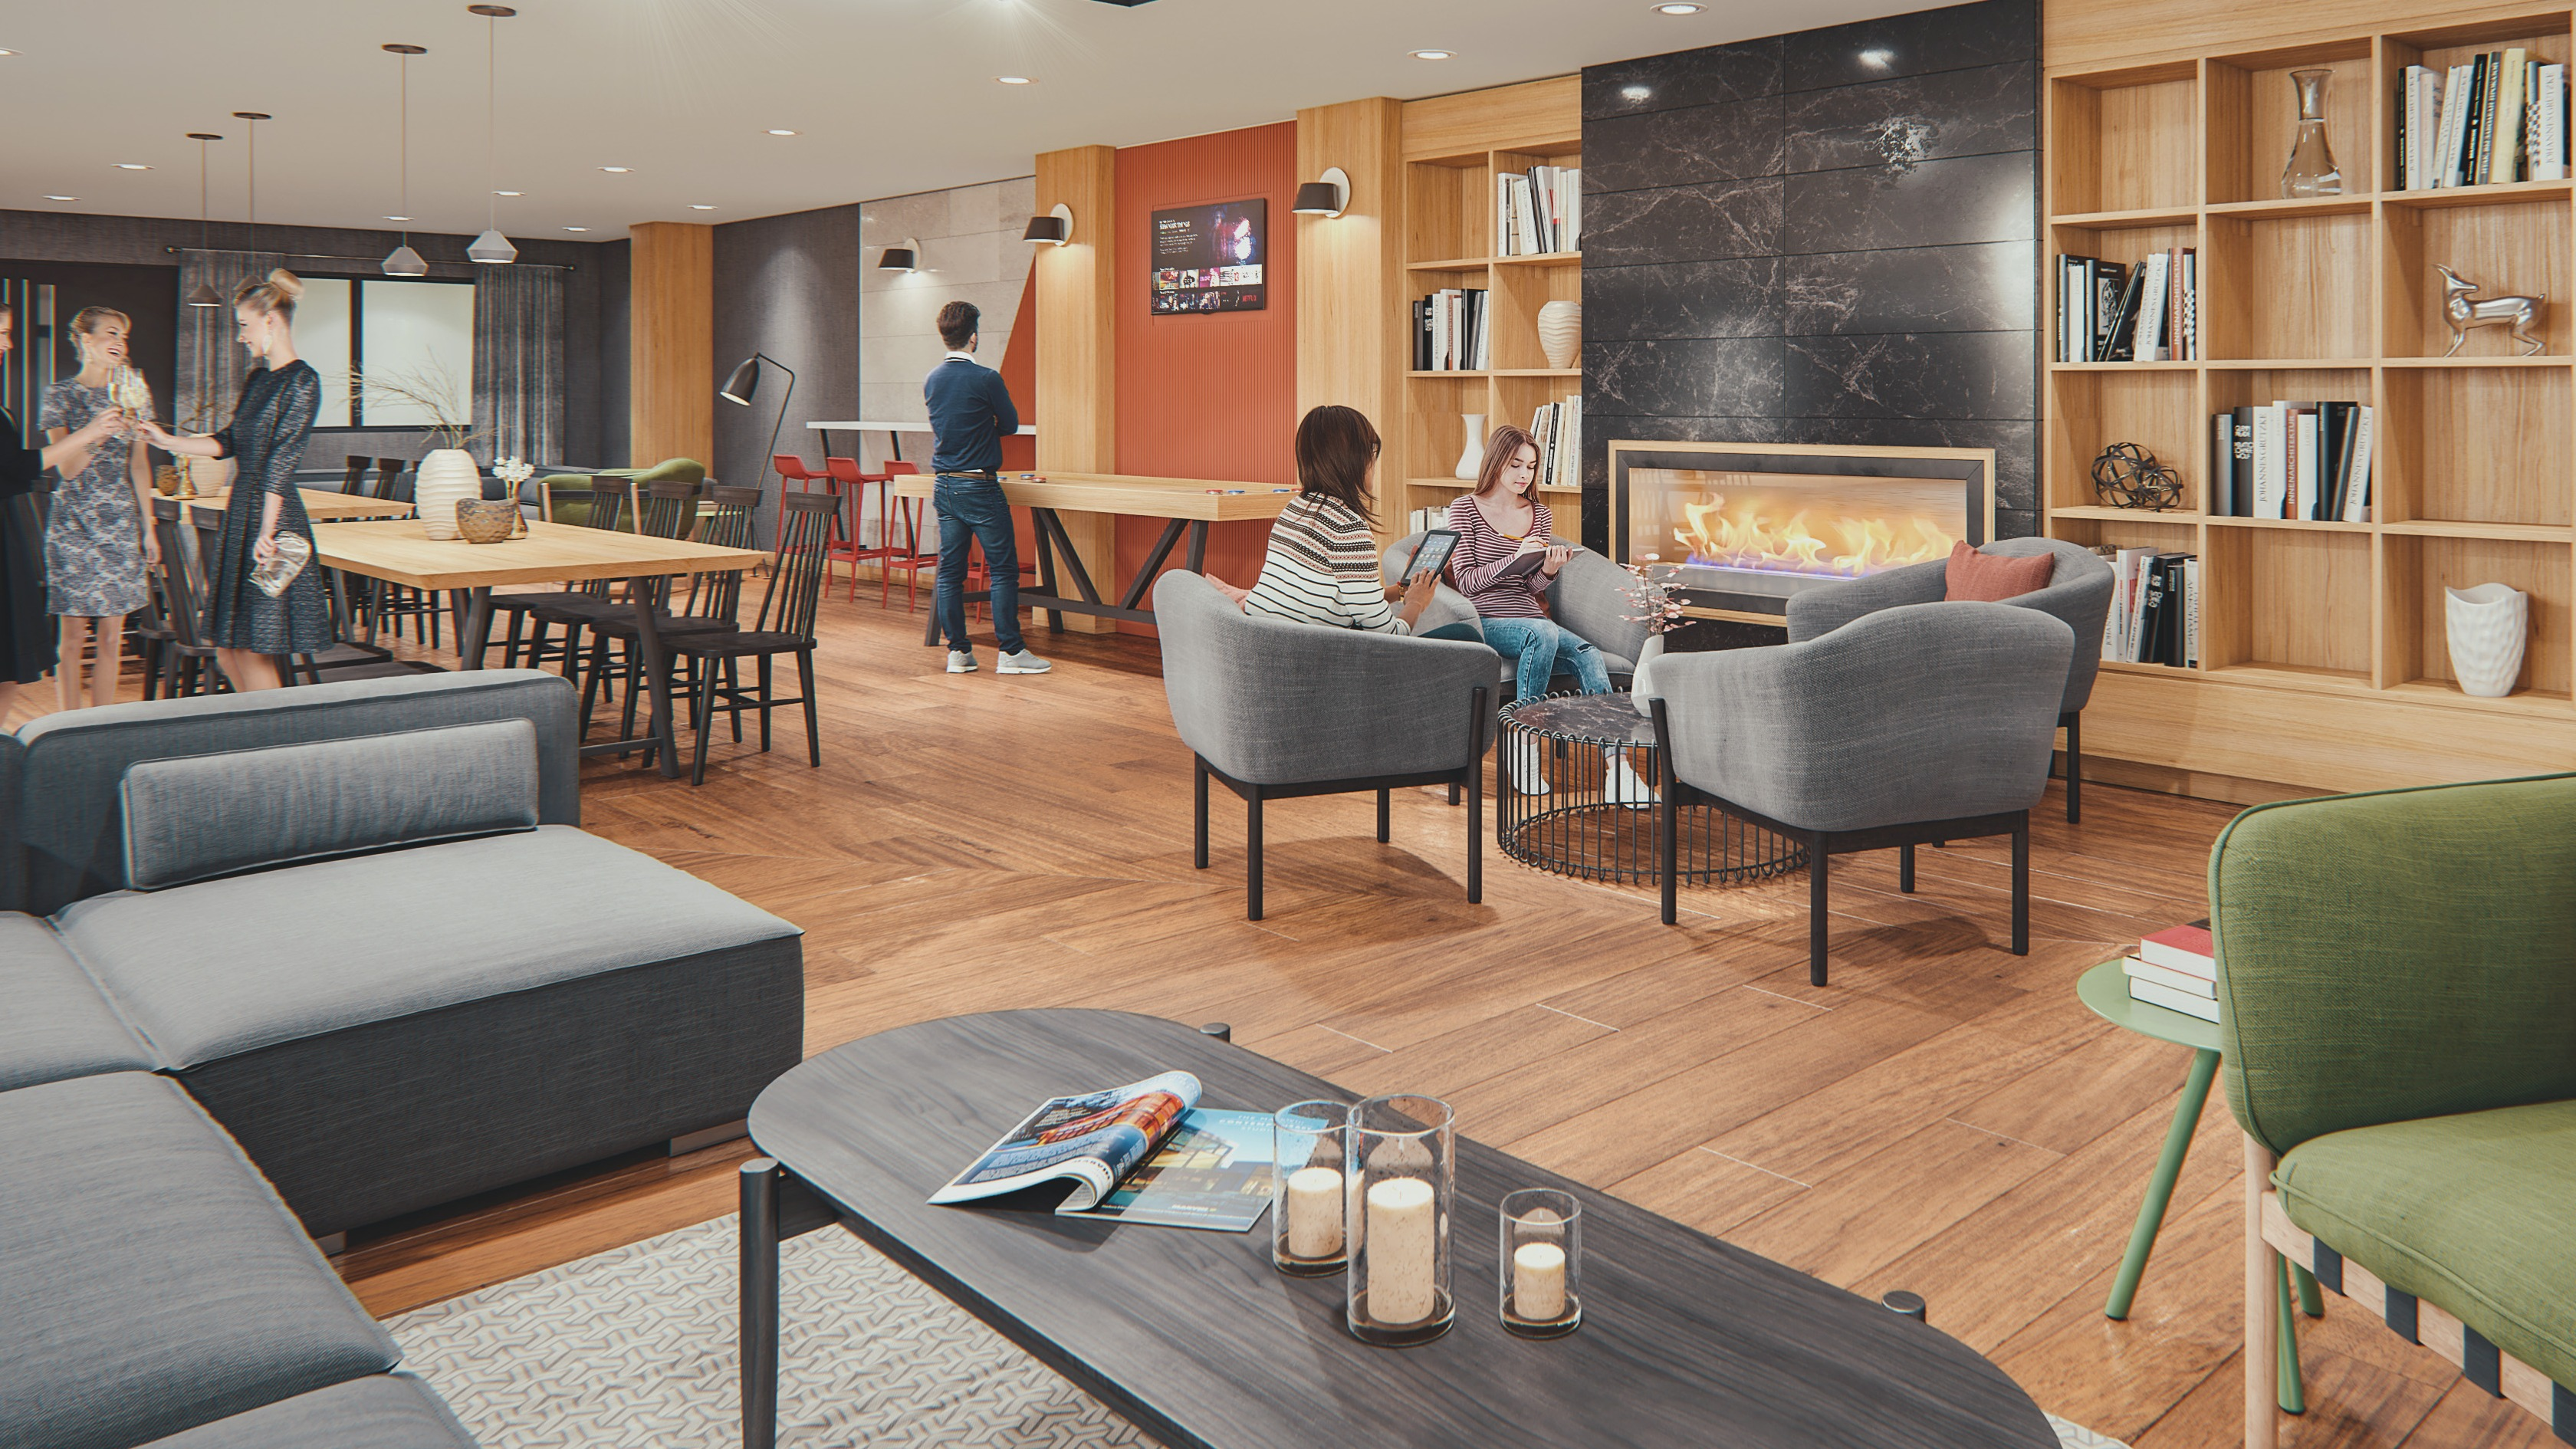 Party room with fire place, built in bookshelves, couches and lounge chairs